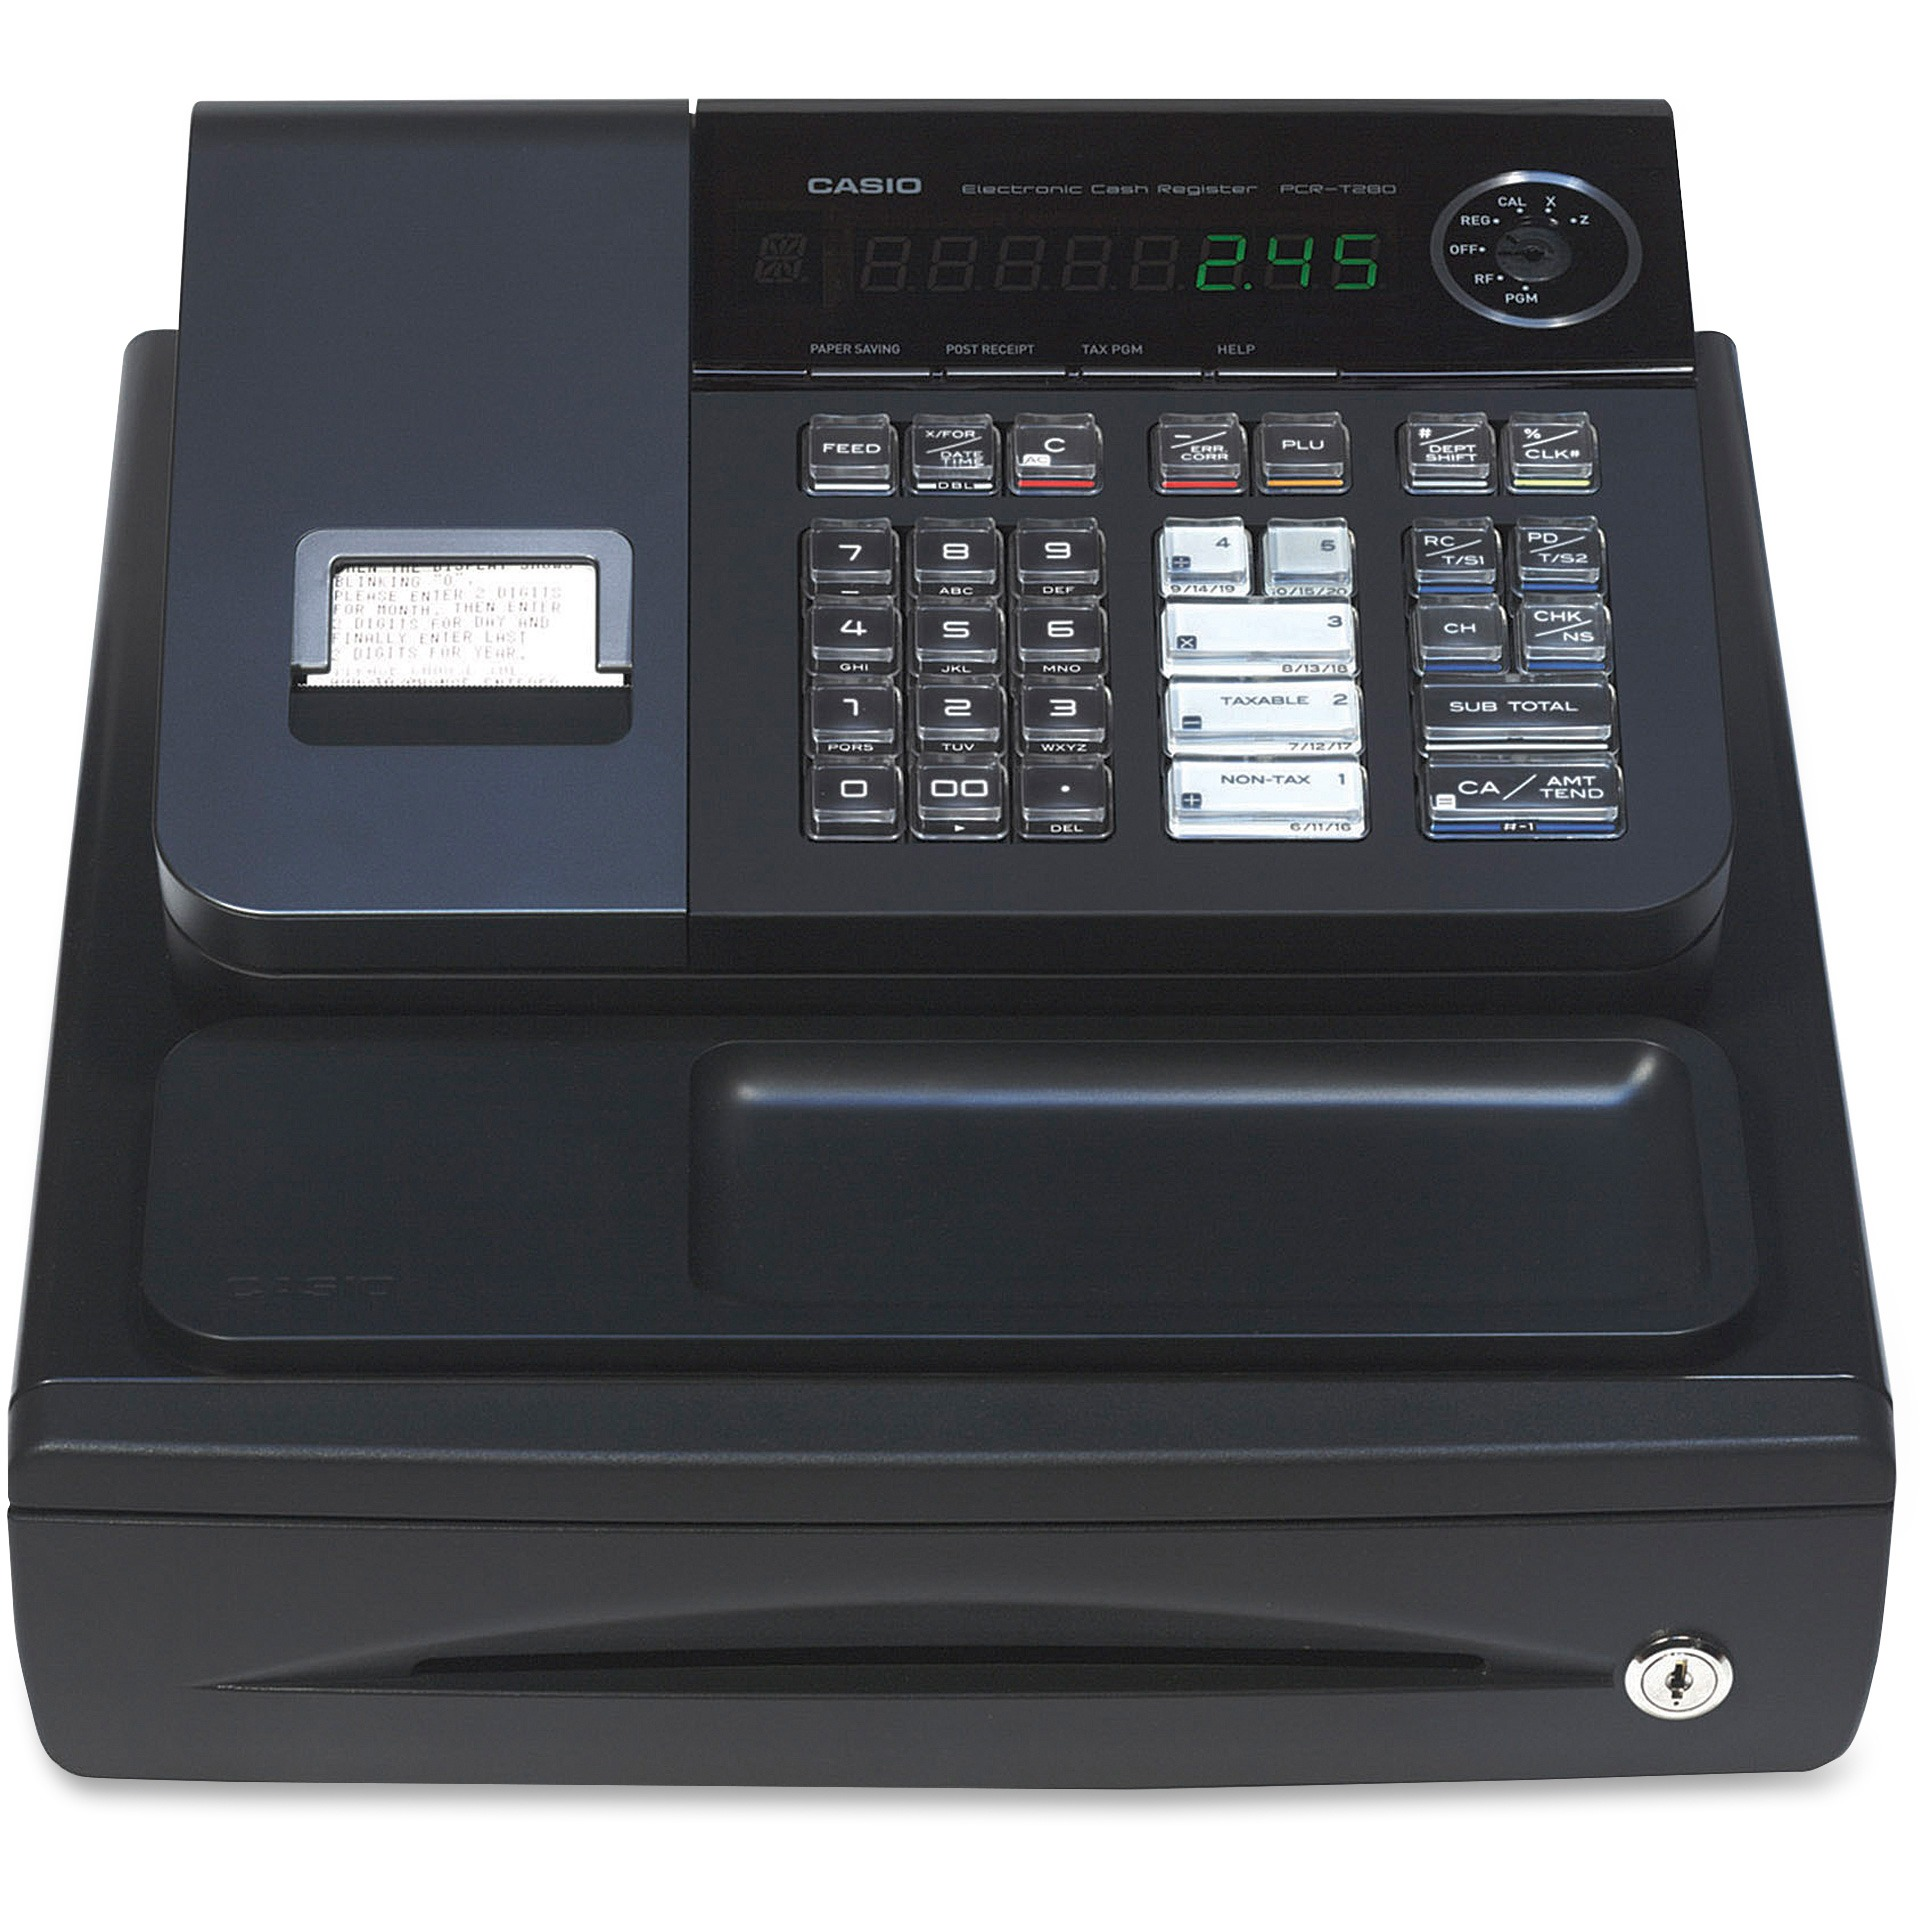 Casio PCR-T280 Cash Register-Stylish Black Color